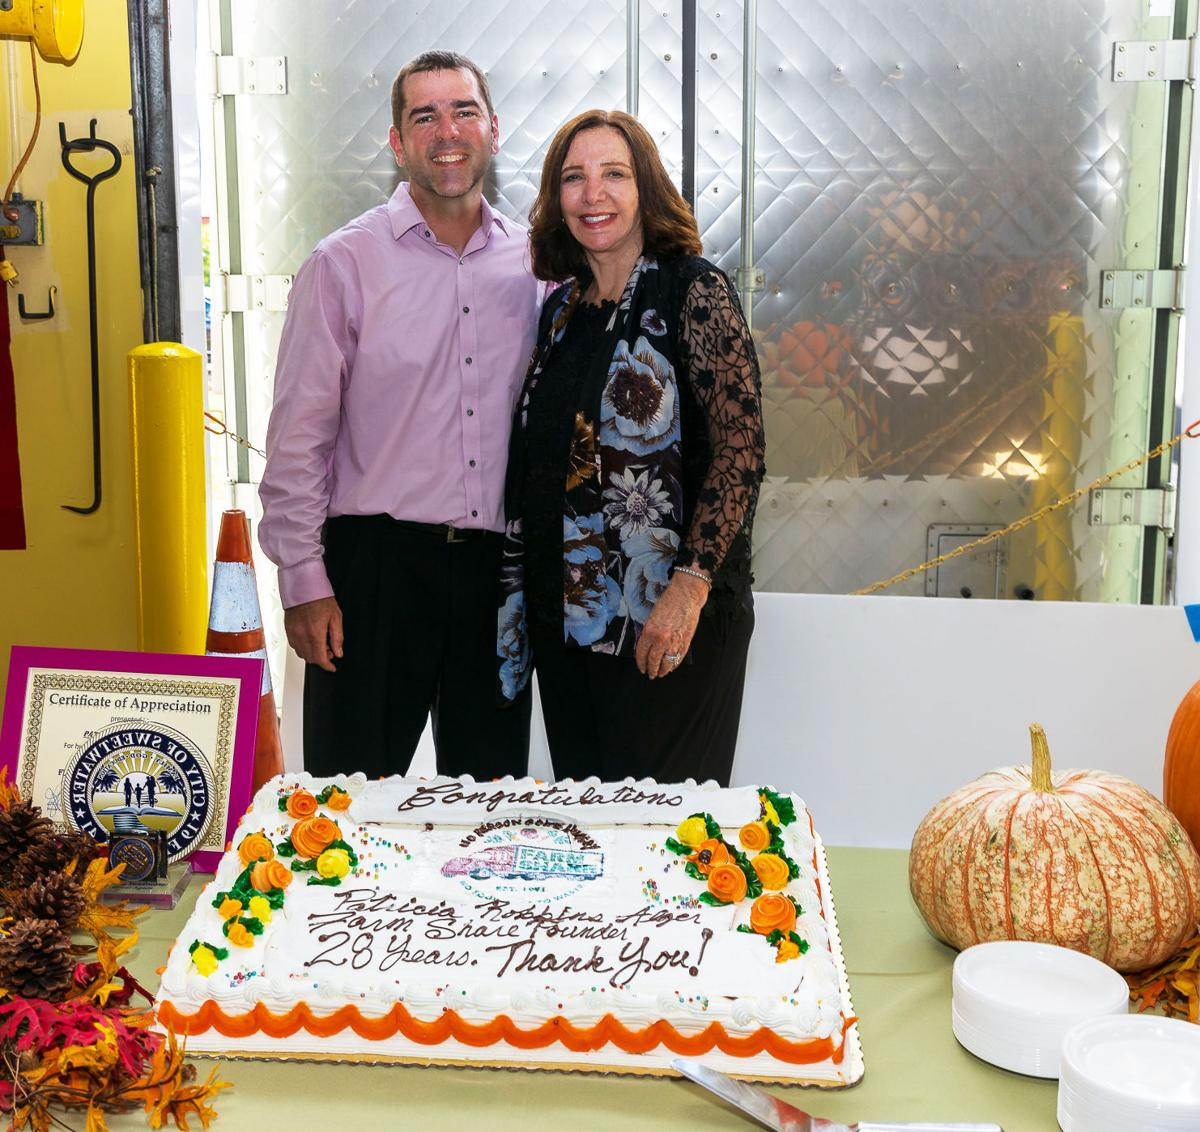 Patricia Robbins, founder and recently retired Farm Share CEO, with current CEO and Homestead Mayor Stephen Shelley, before cutting the cake made in her honor.